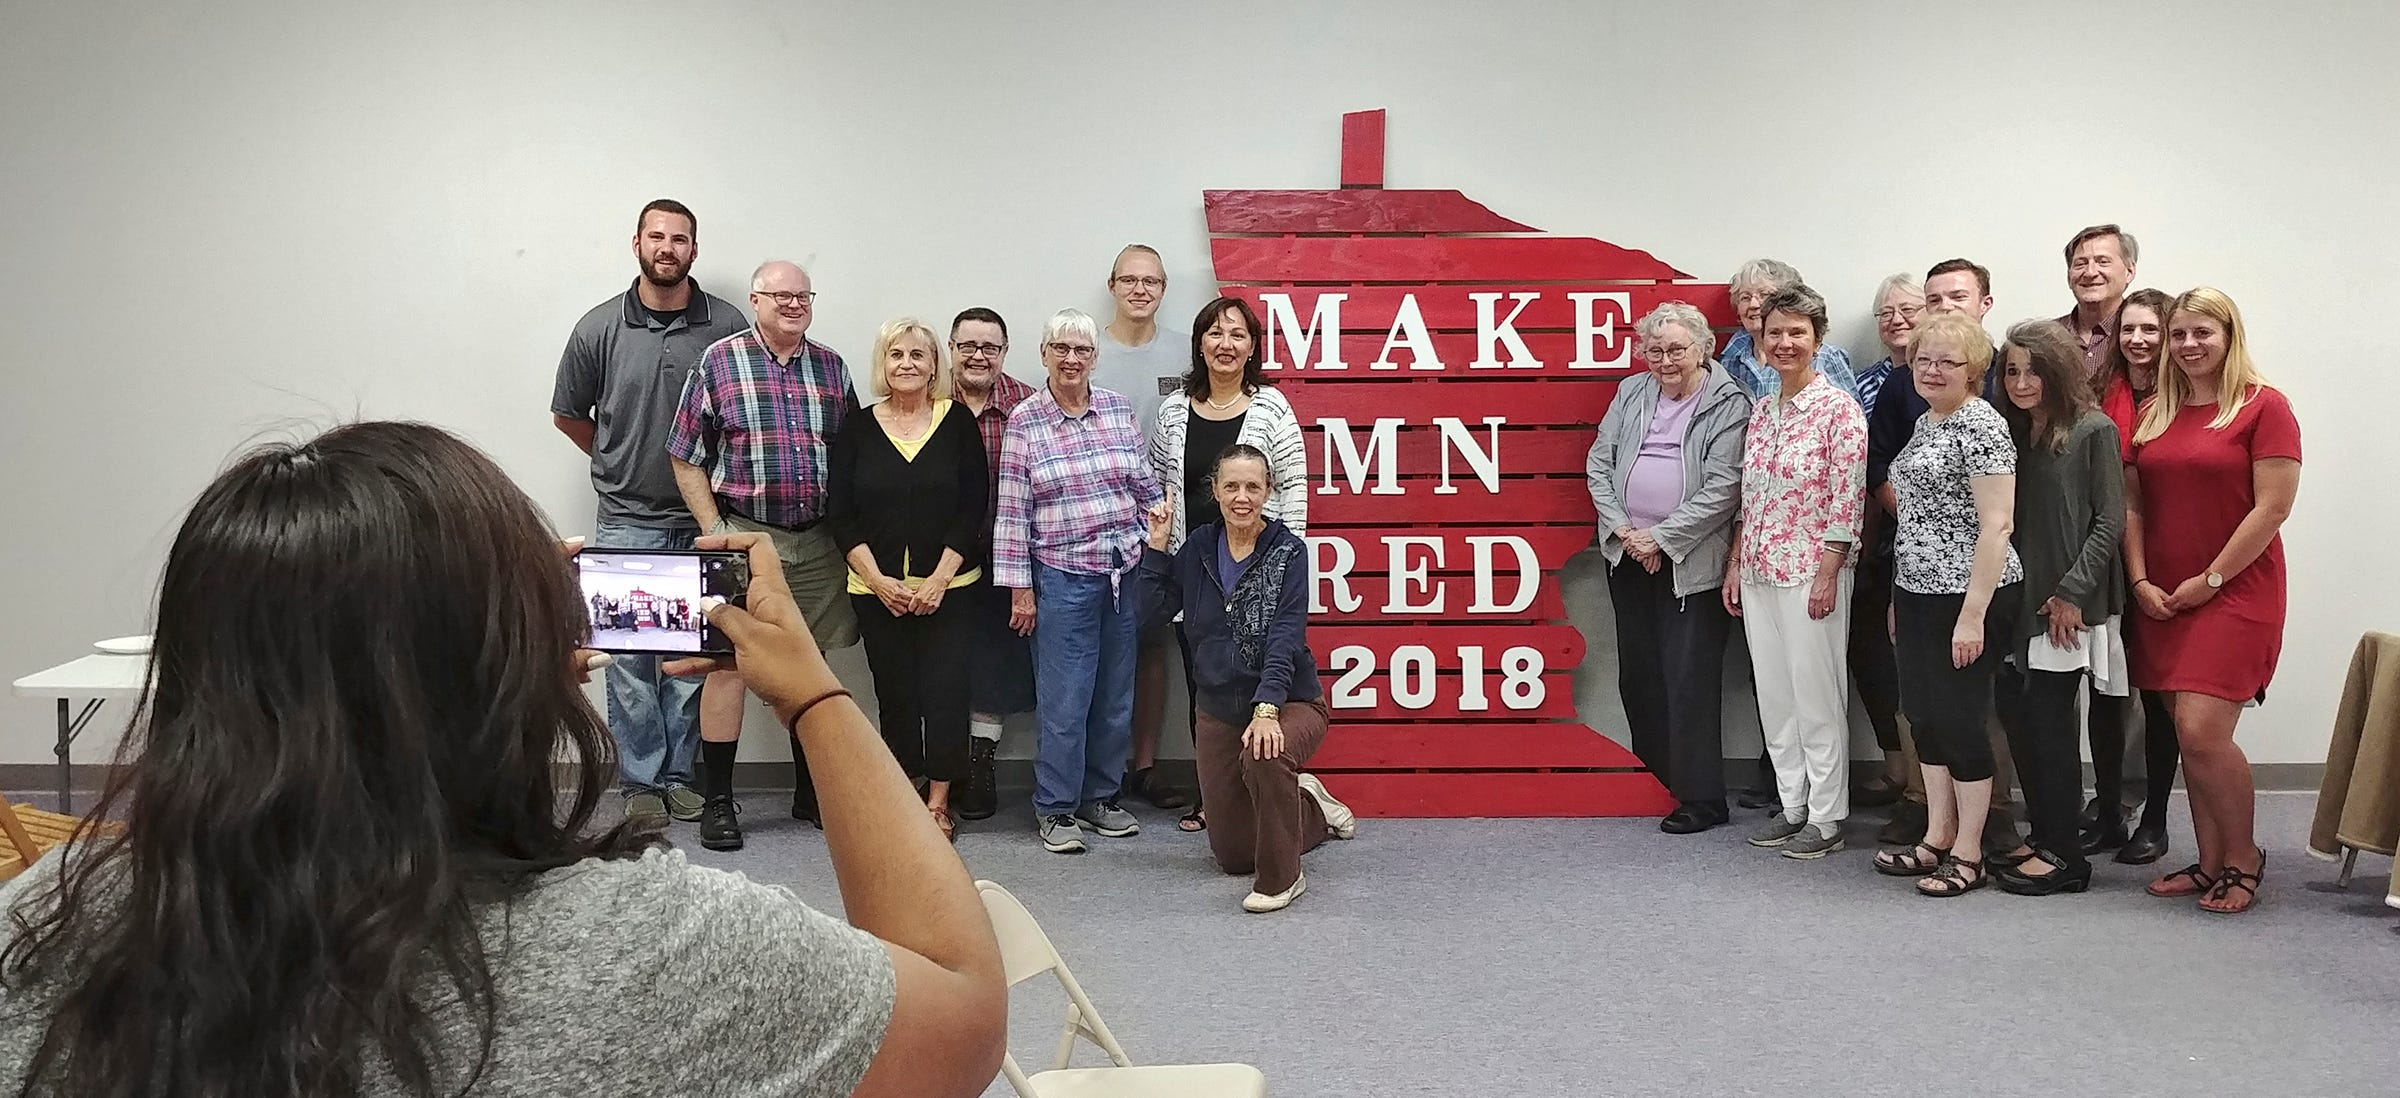 2018 Midterms Gop Sees Opportunity In Minnesota Trump Country